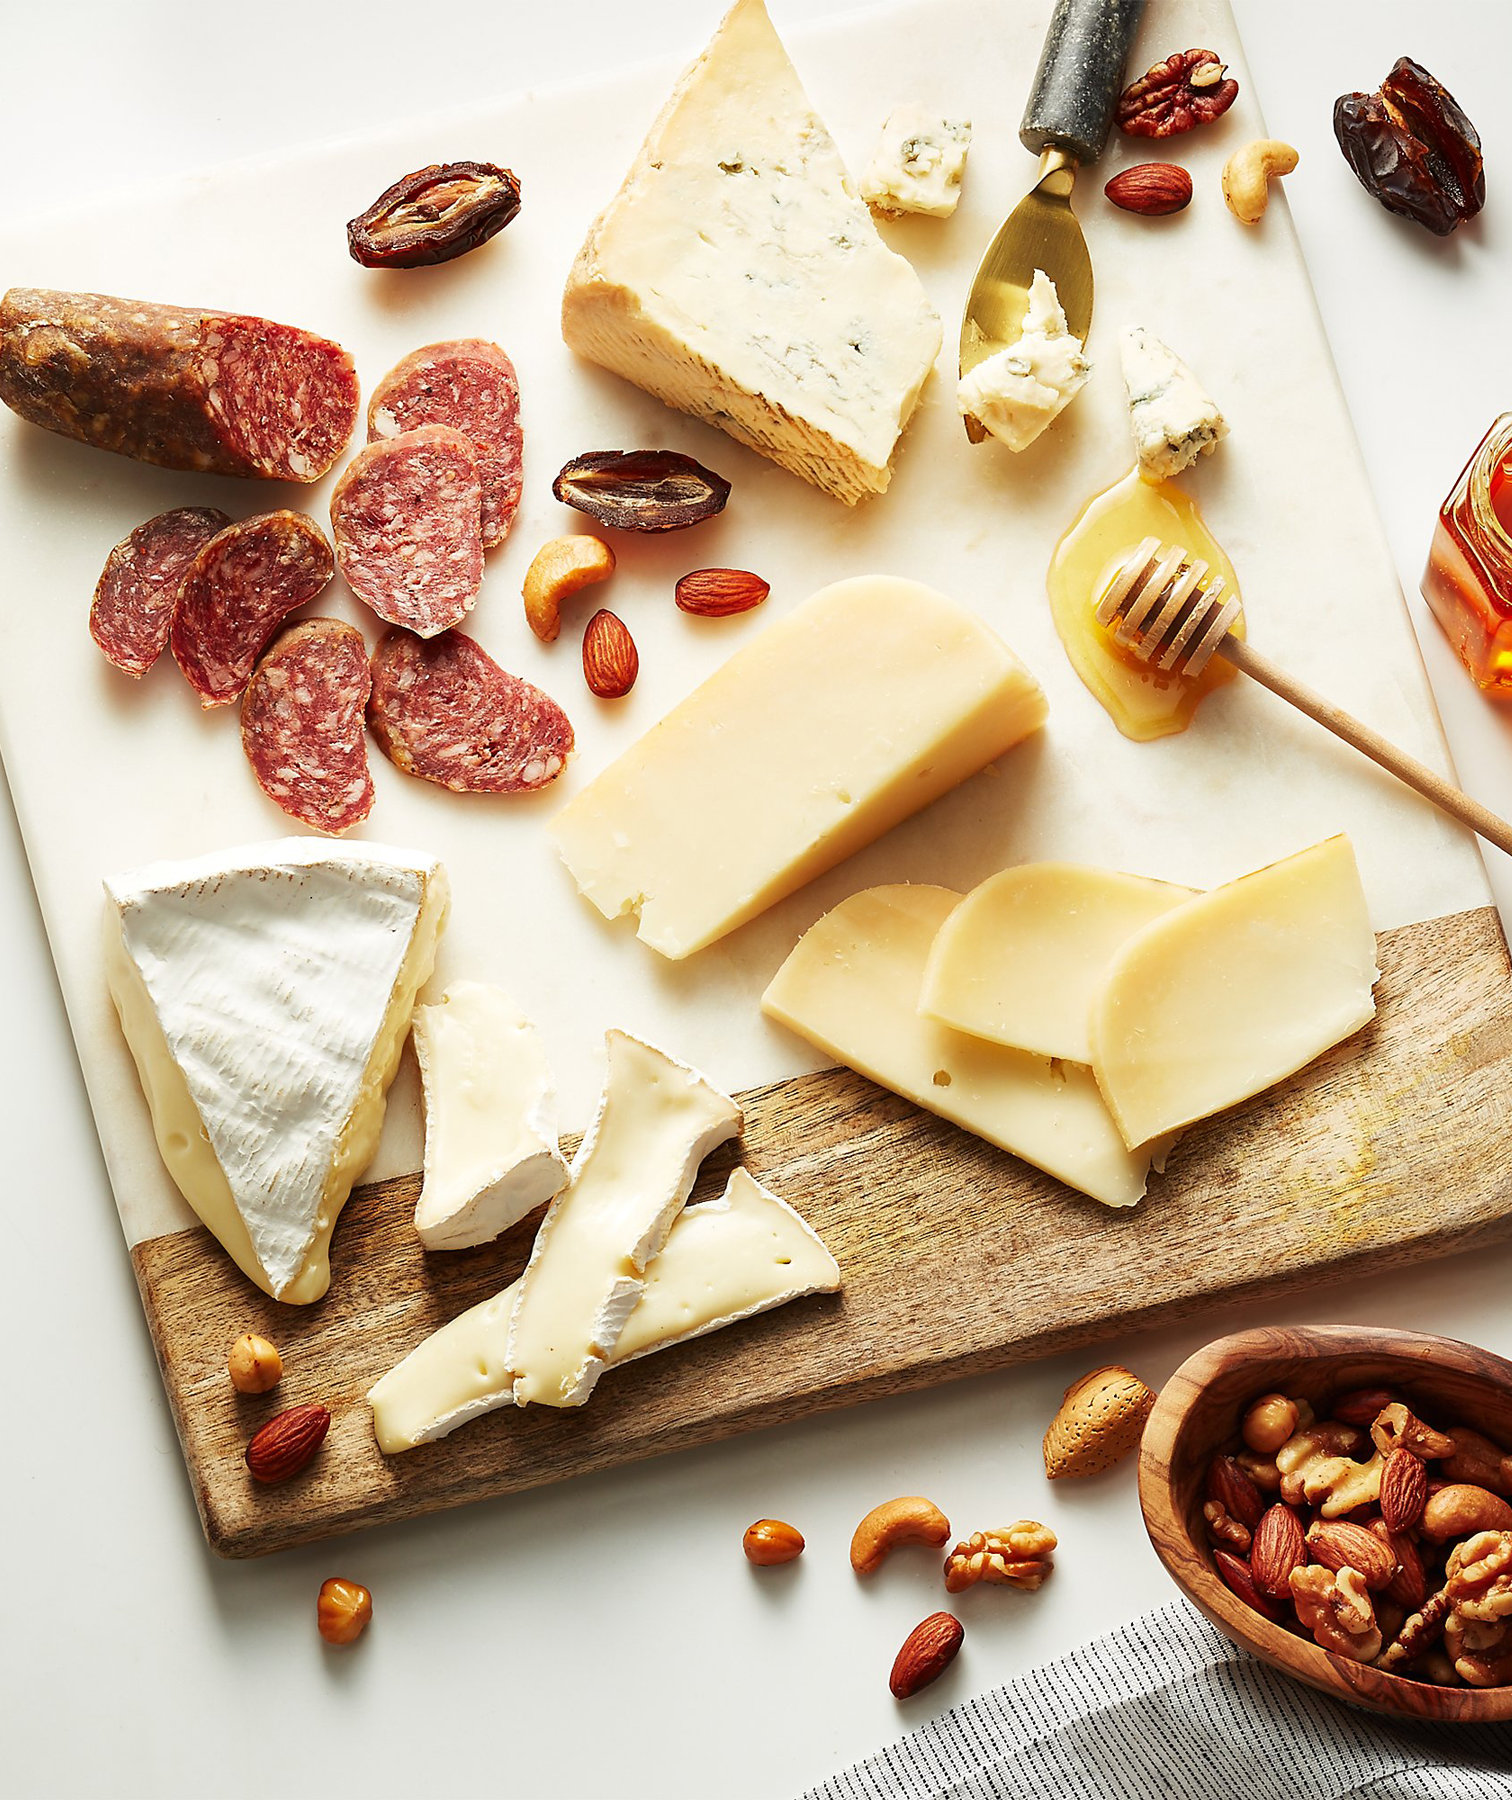 Crate & Barrel Sells Cheese Now, and Building Your Own Charcuterie Board Has Never Been Easier